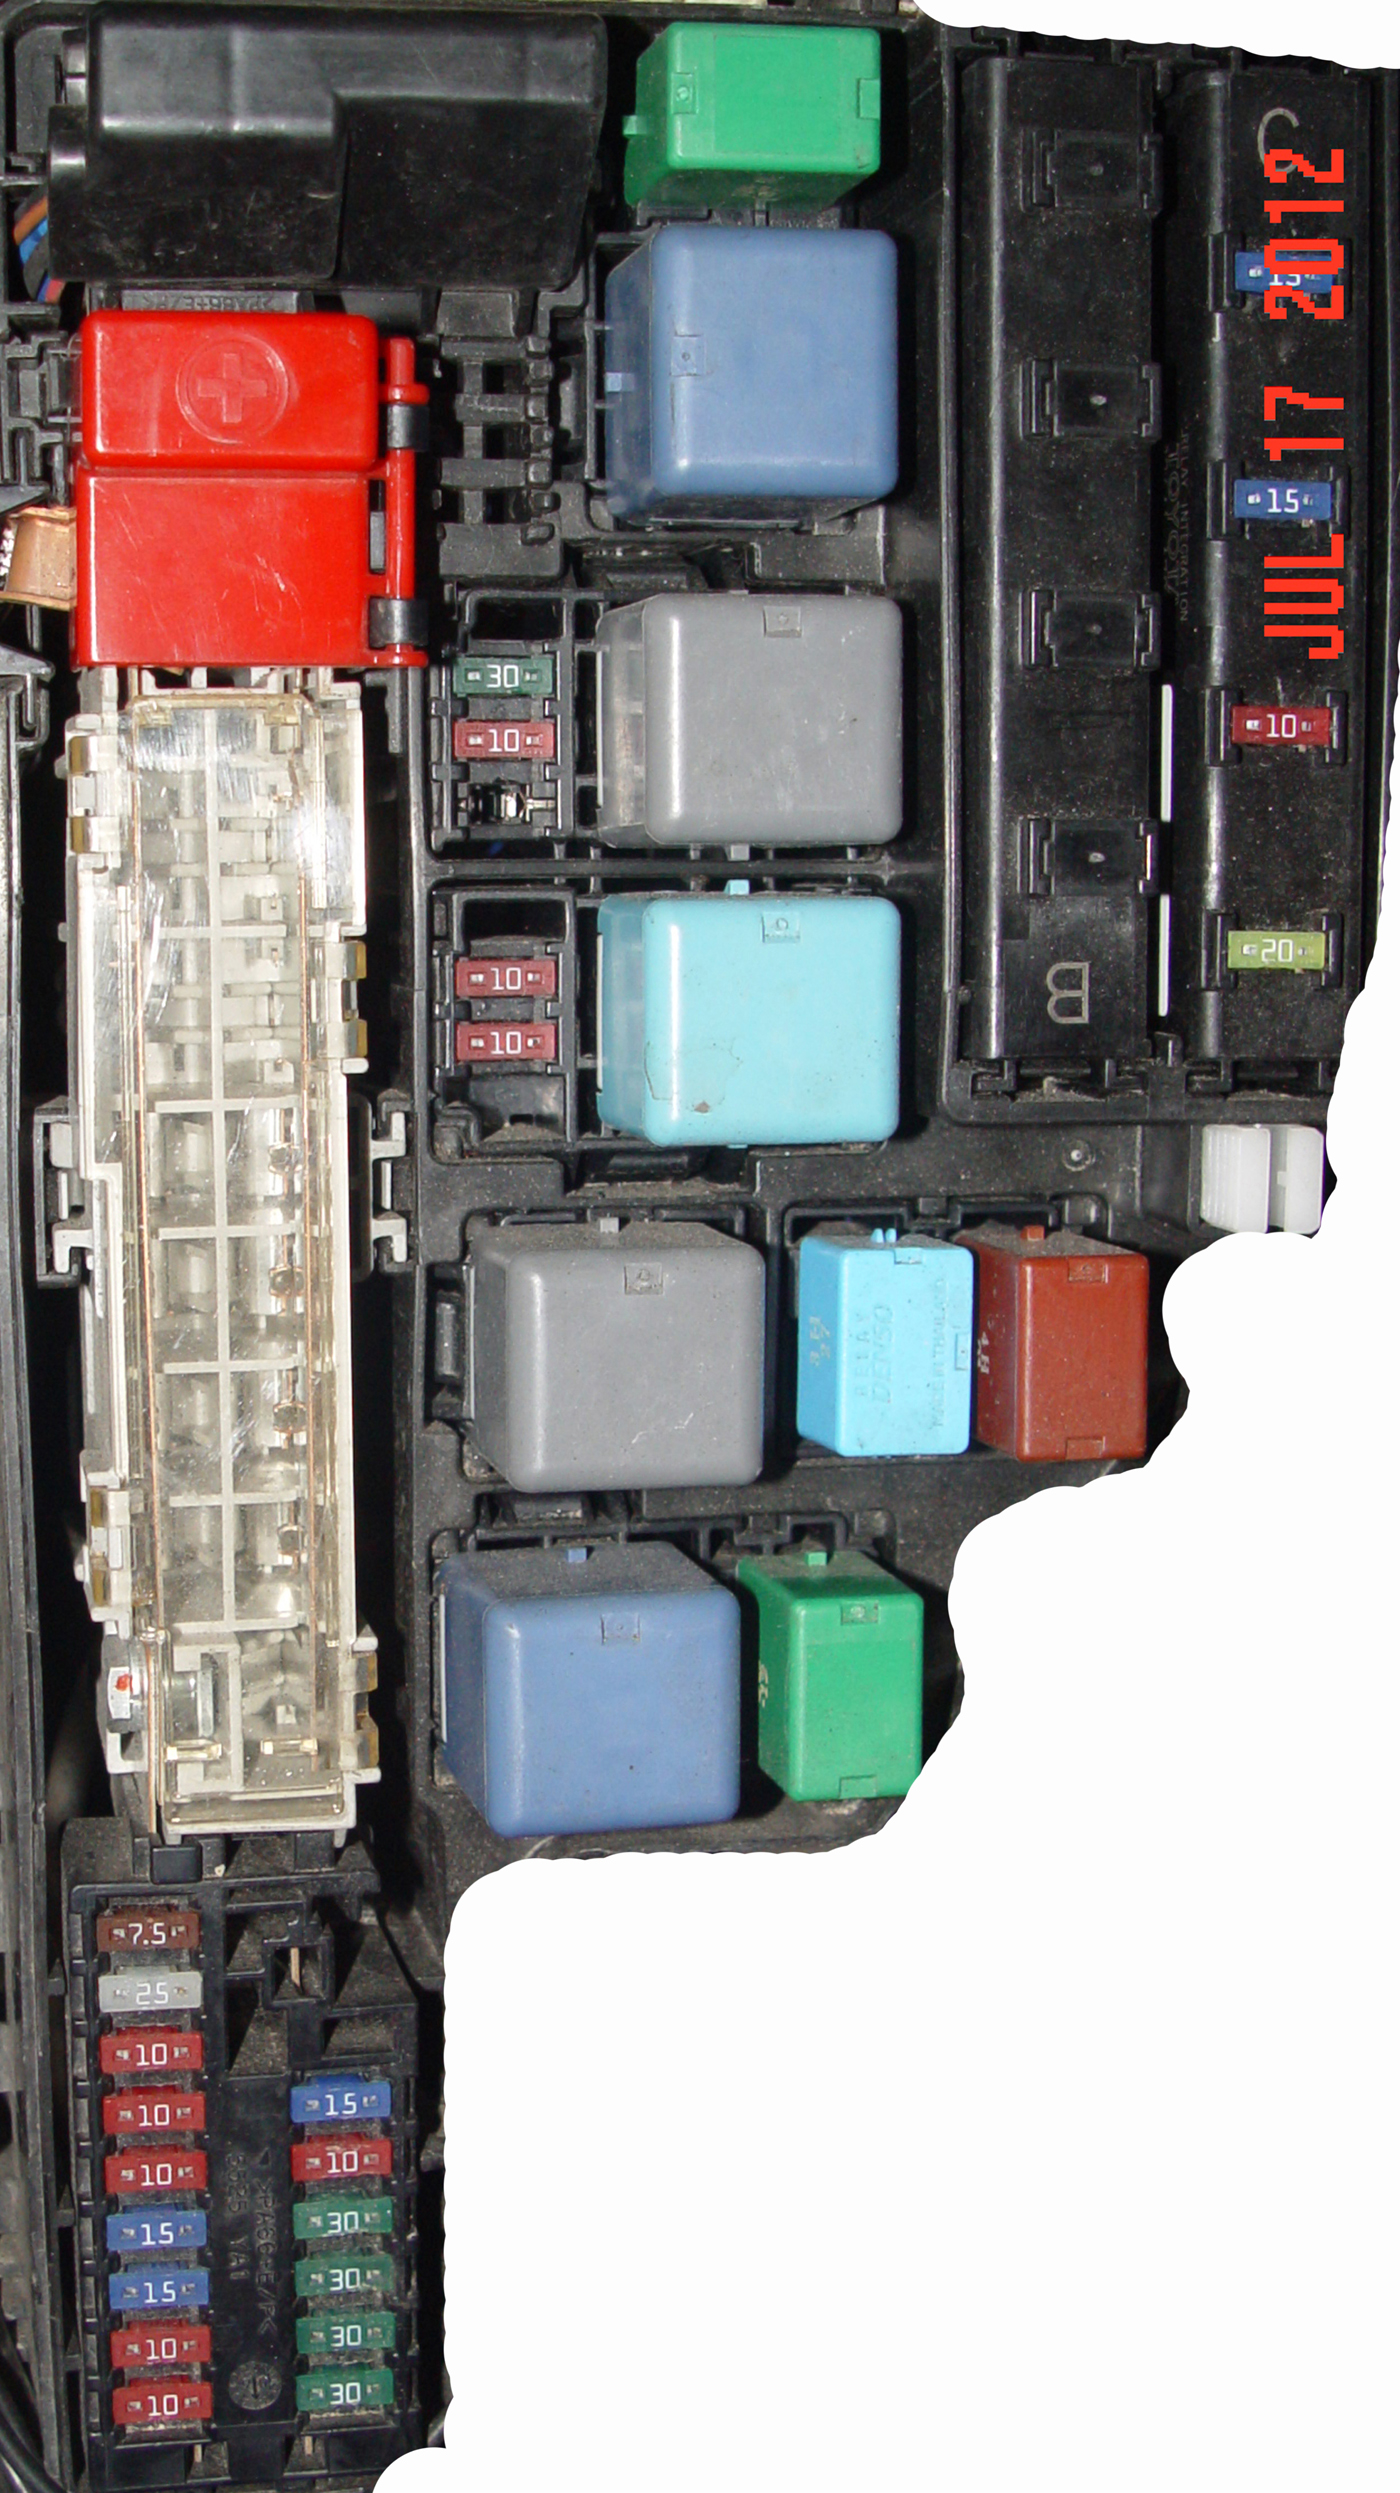 2004 toyota prius fuse box diagram iirGtIL 2008 toyota prius fuse box 2007 toyota prius fuse box \u2022 free 2003 toyota fuse box at readyjetset.co